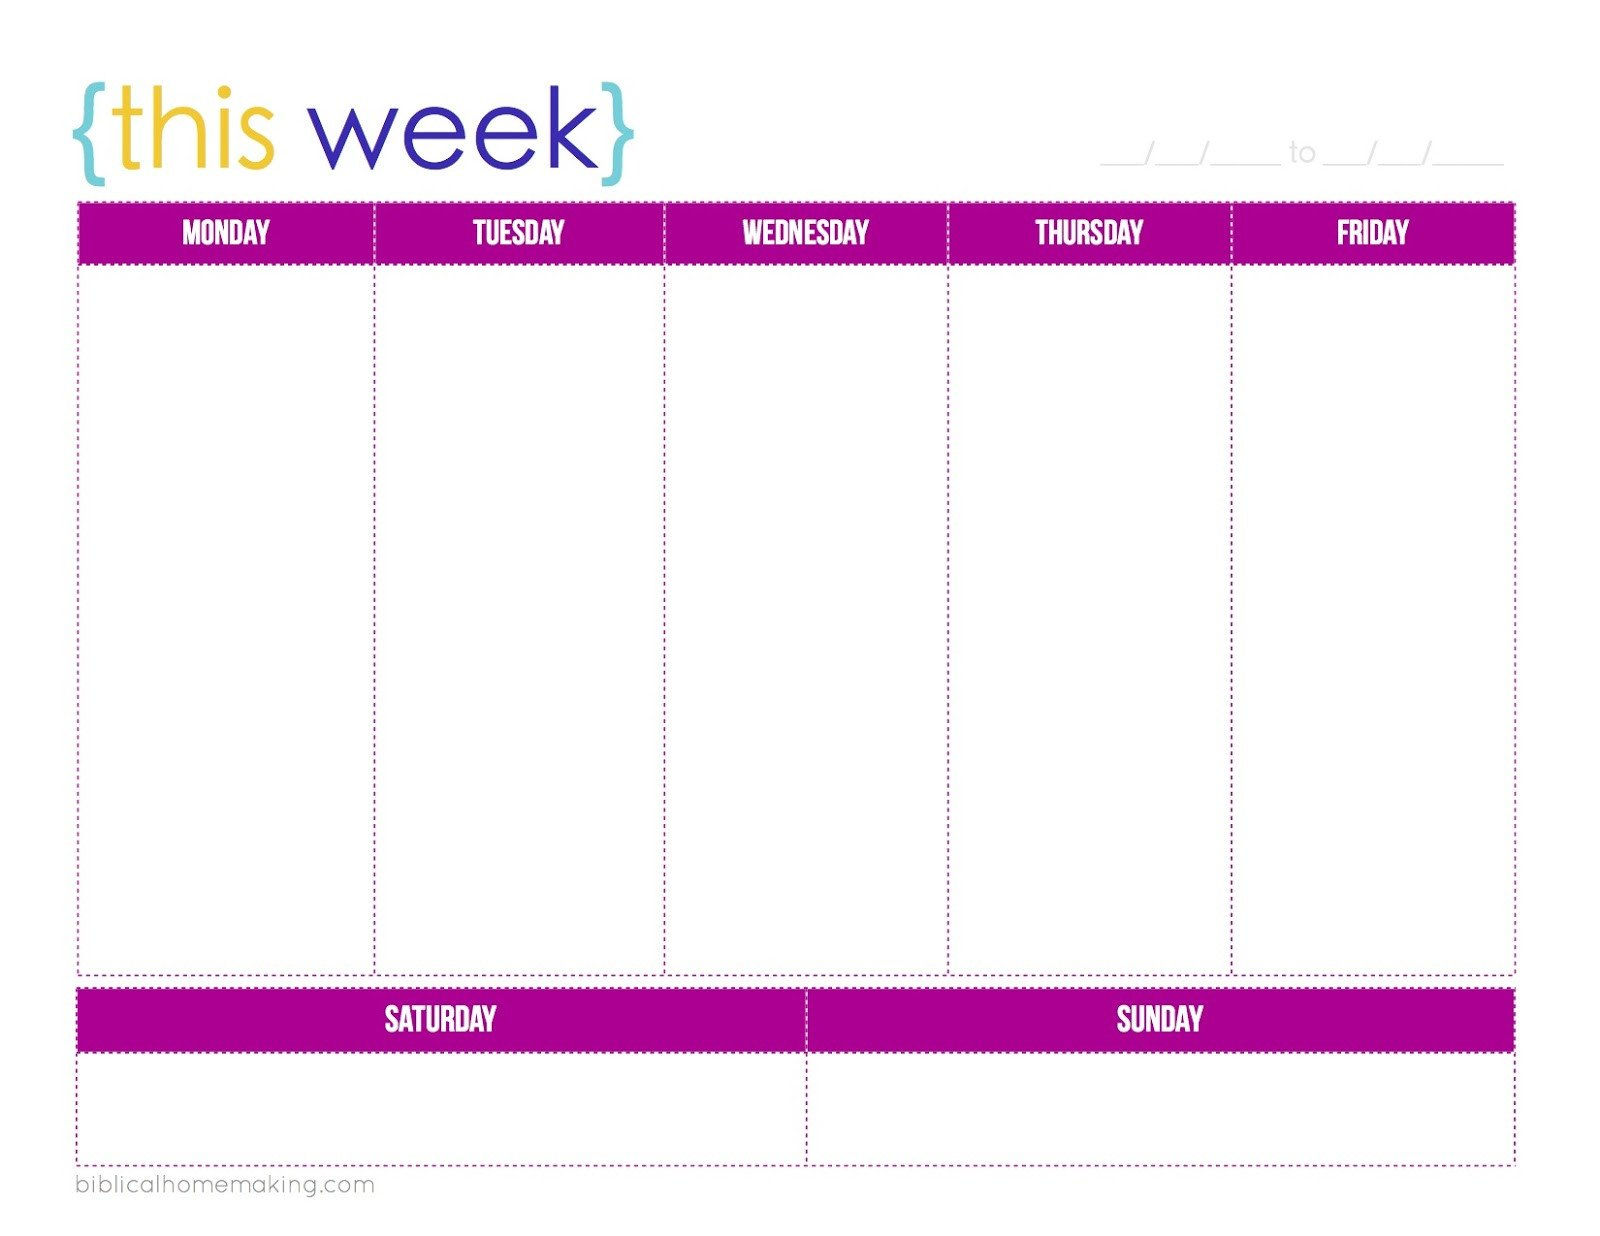 One Week Schedule Template This Week A Free Weekly Planner Printable Biblical